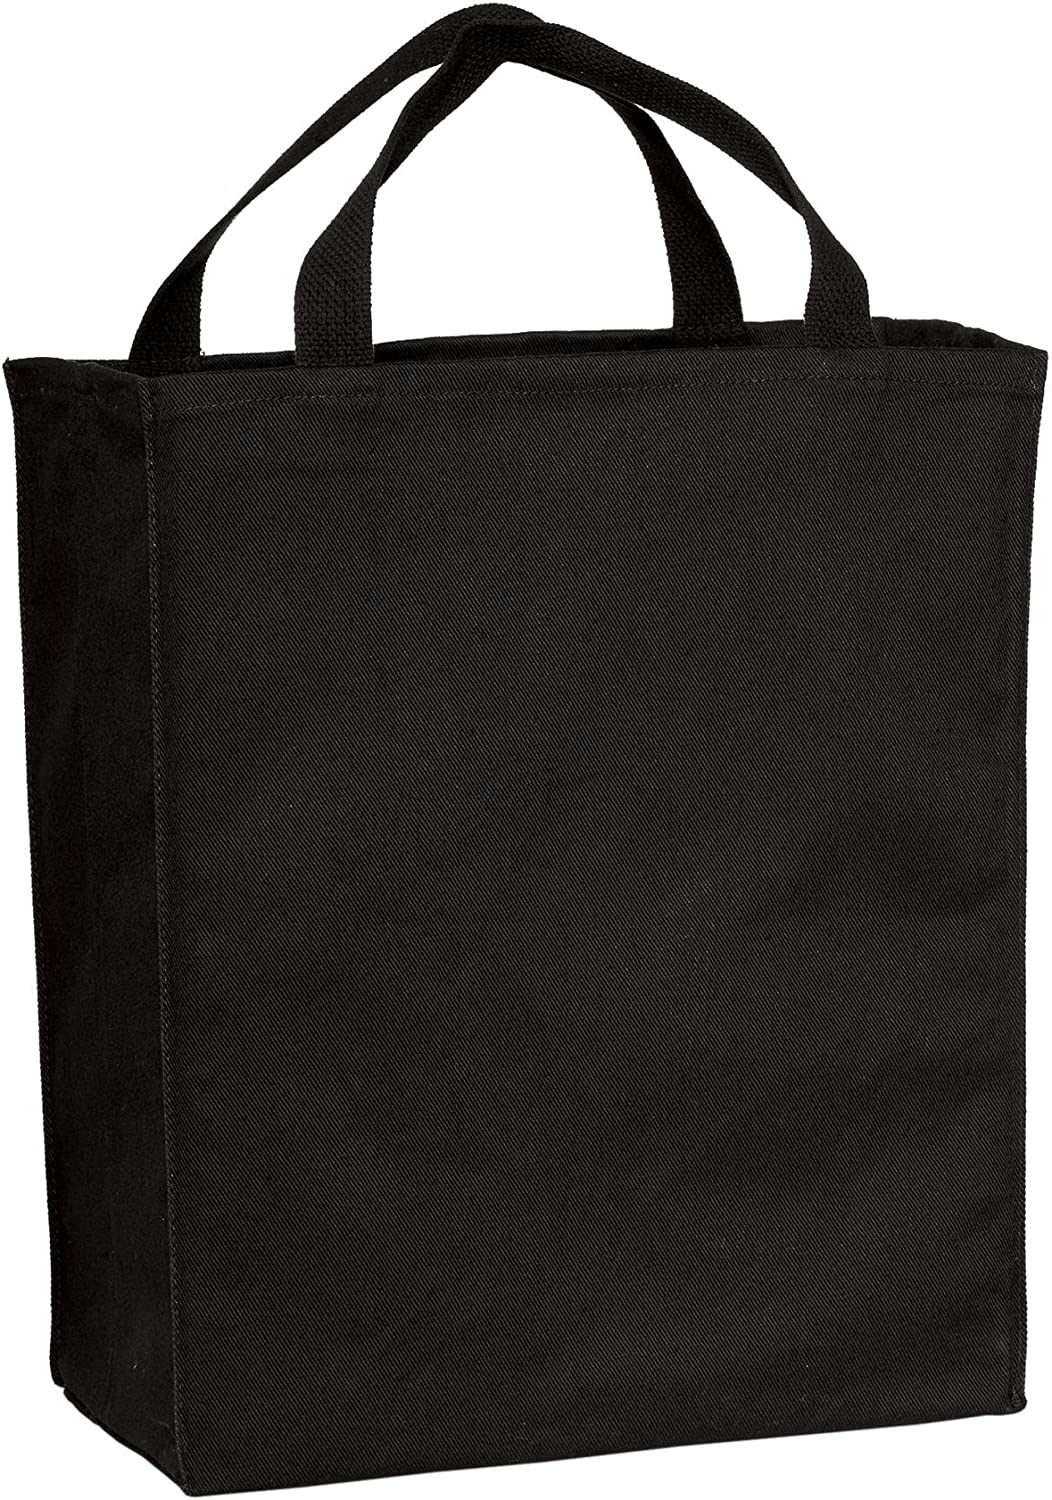 Port /& Company luggage-and-bags Laundry Bag OSFA Natural